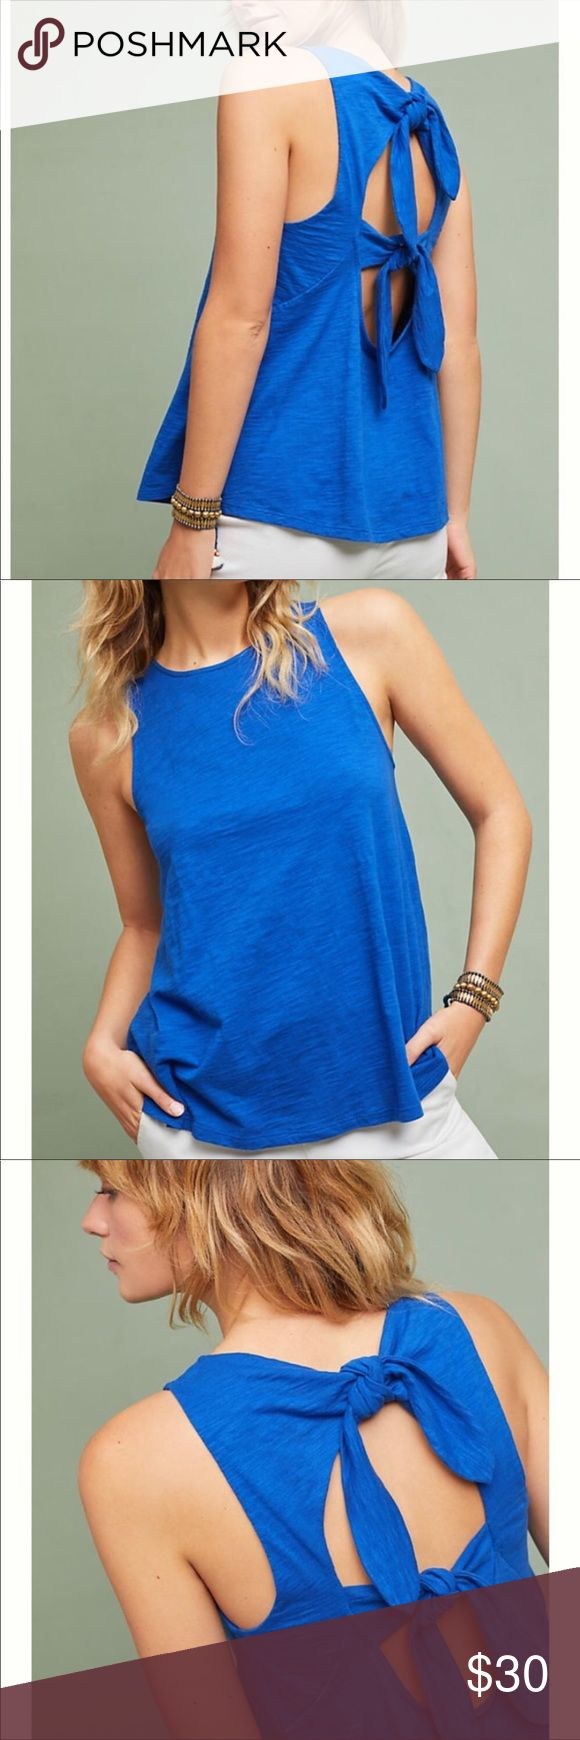 Anthropologie RO&DE Bow Back tank! Size Large. NWT!!! Anthropologie blue RO&DE Bow Back Tank in a size large. Great with jeans or shorts! The back is open. You can retie the bows in back to make it slightly tighter. Anthropologie Tops Tank Tops